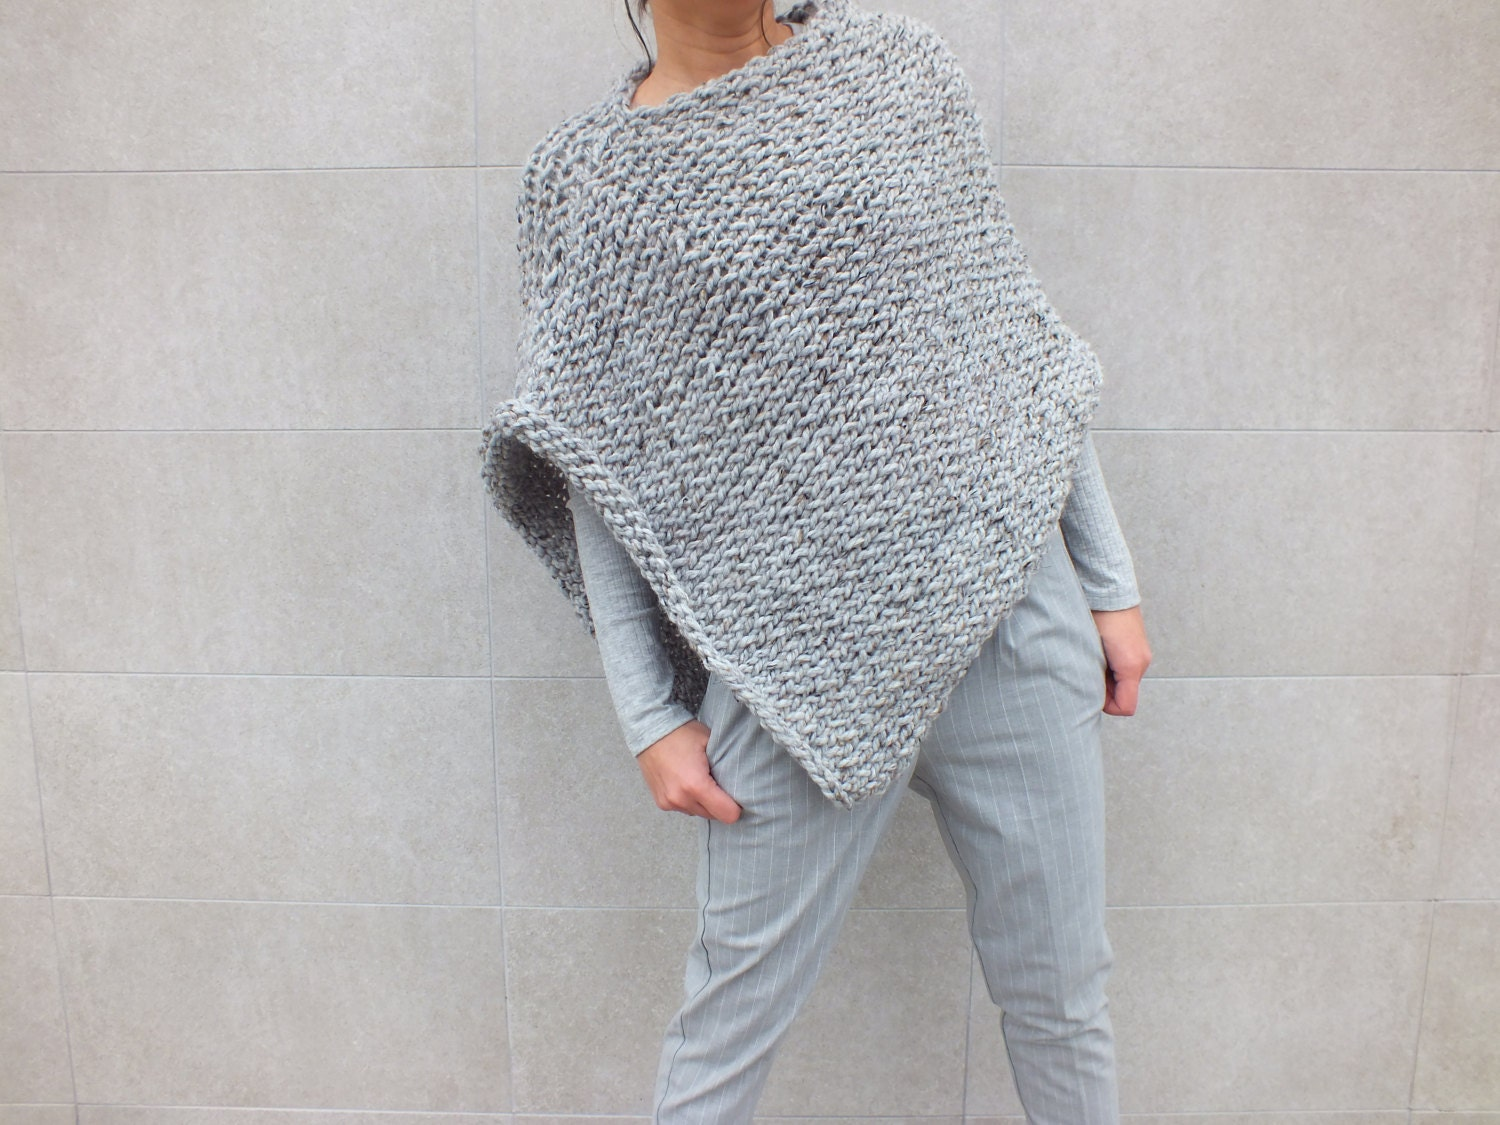 Beginner Knitting Poncho : Pattern poncho easy to knit beginner